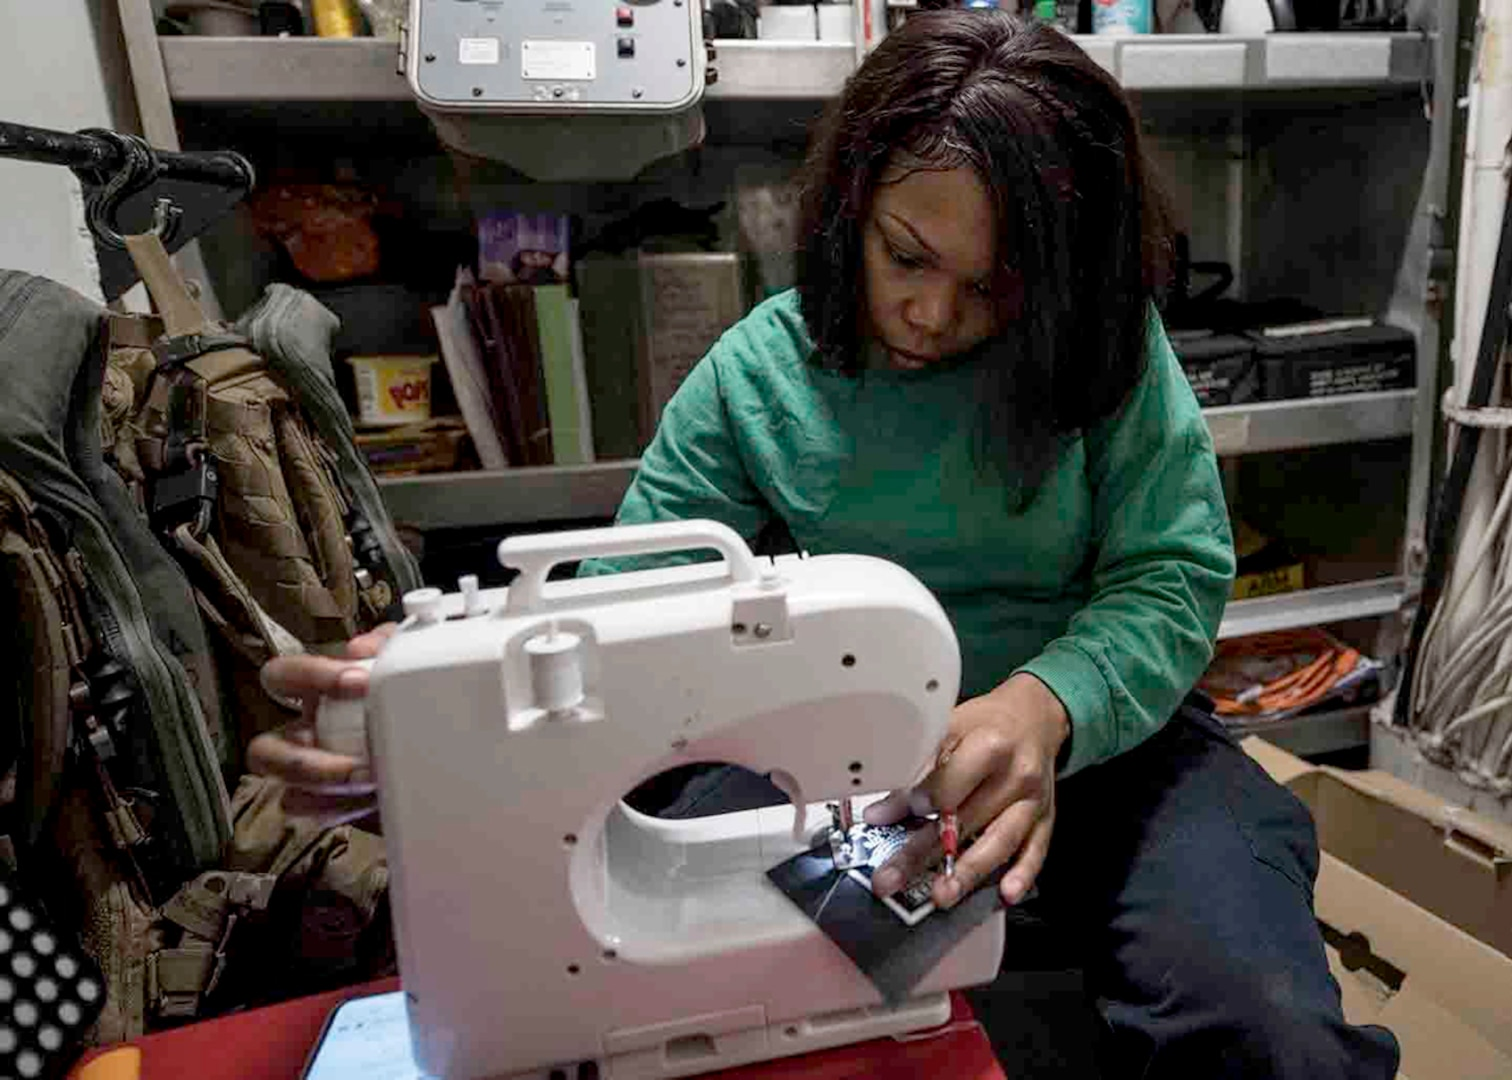 Image of female sailor using a sewing machine